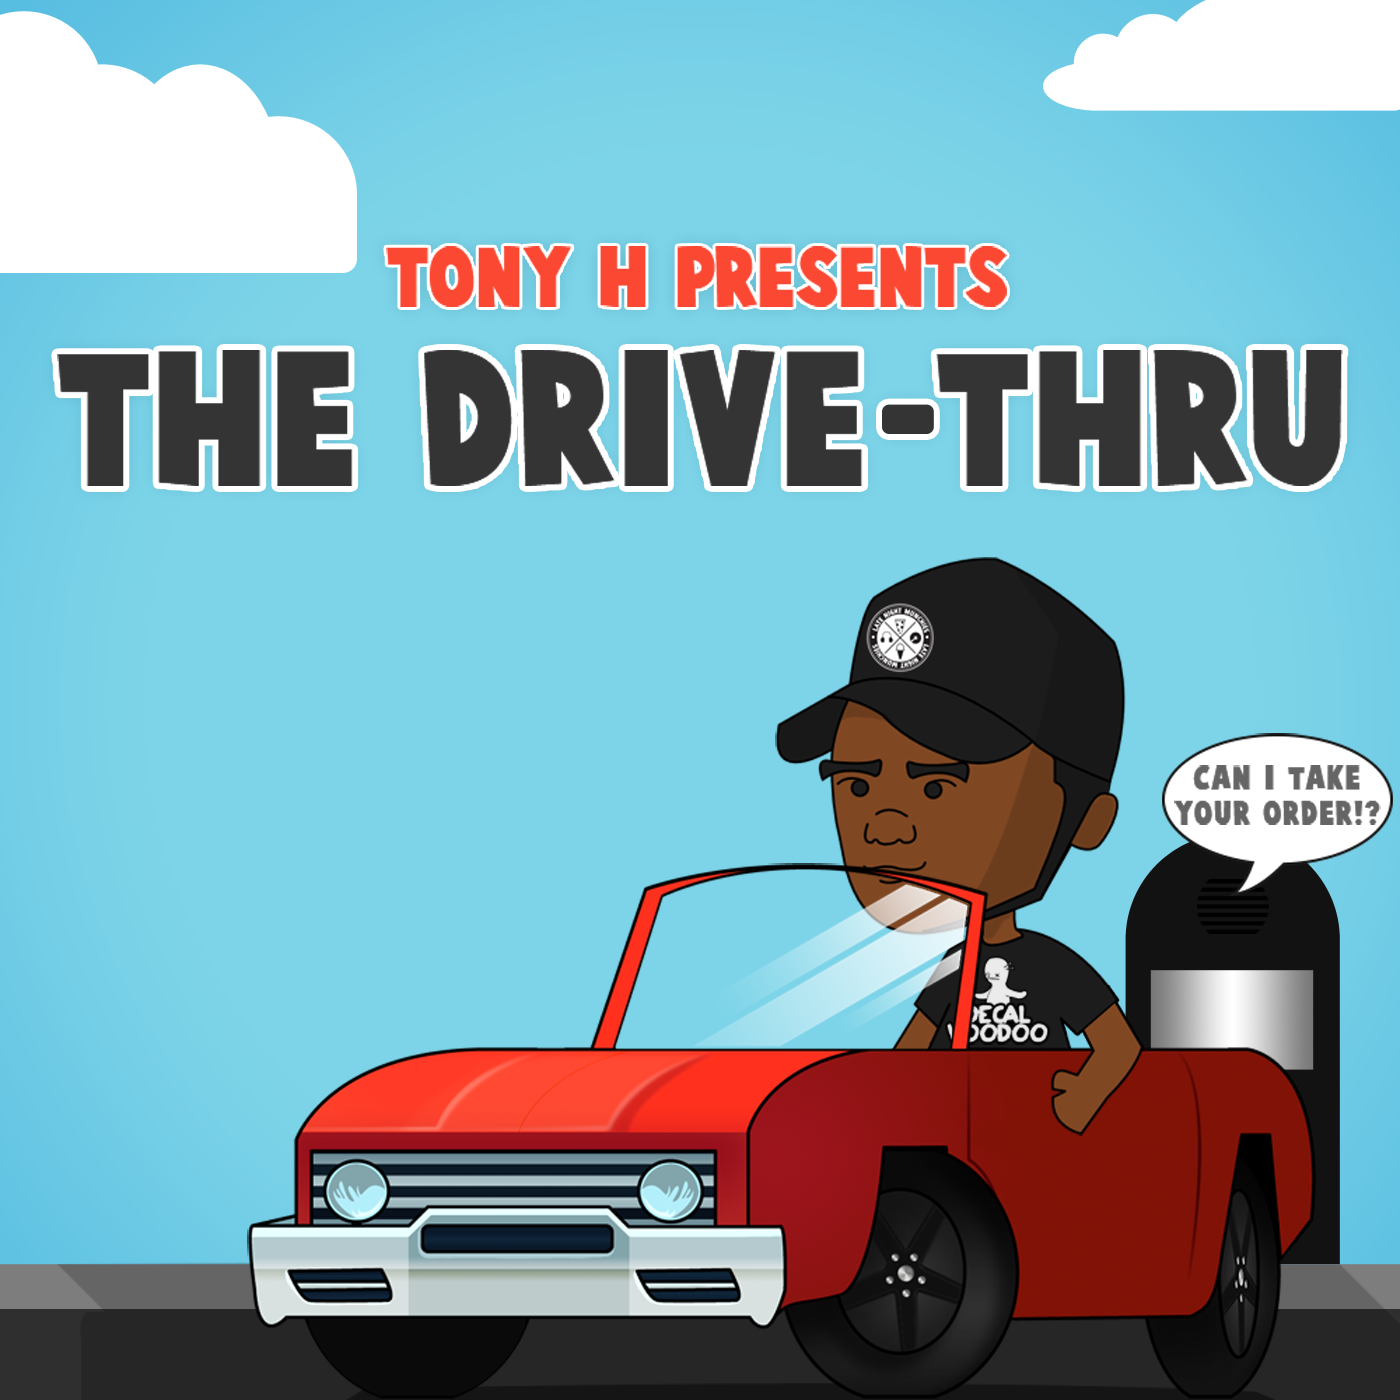 Tony H presents The Drive-Thru